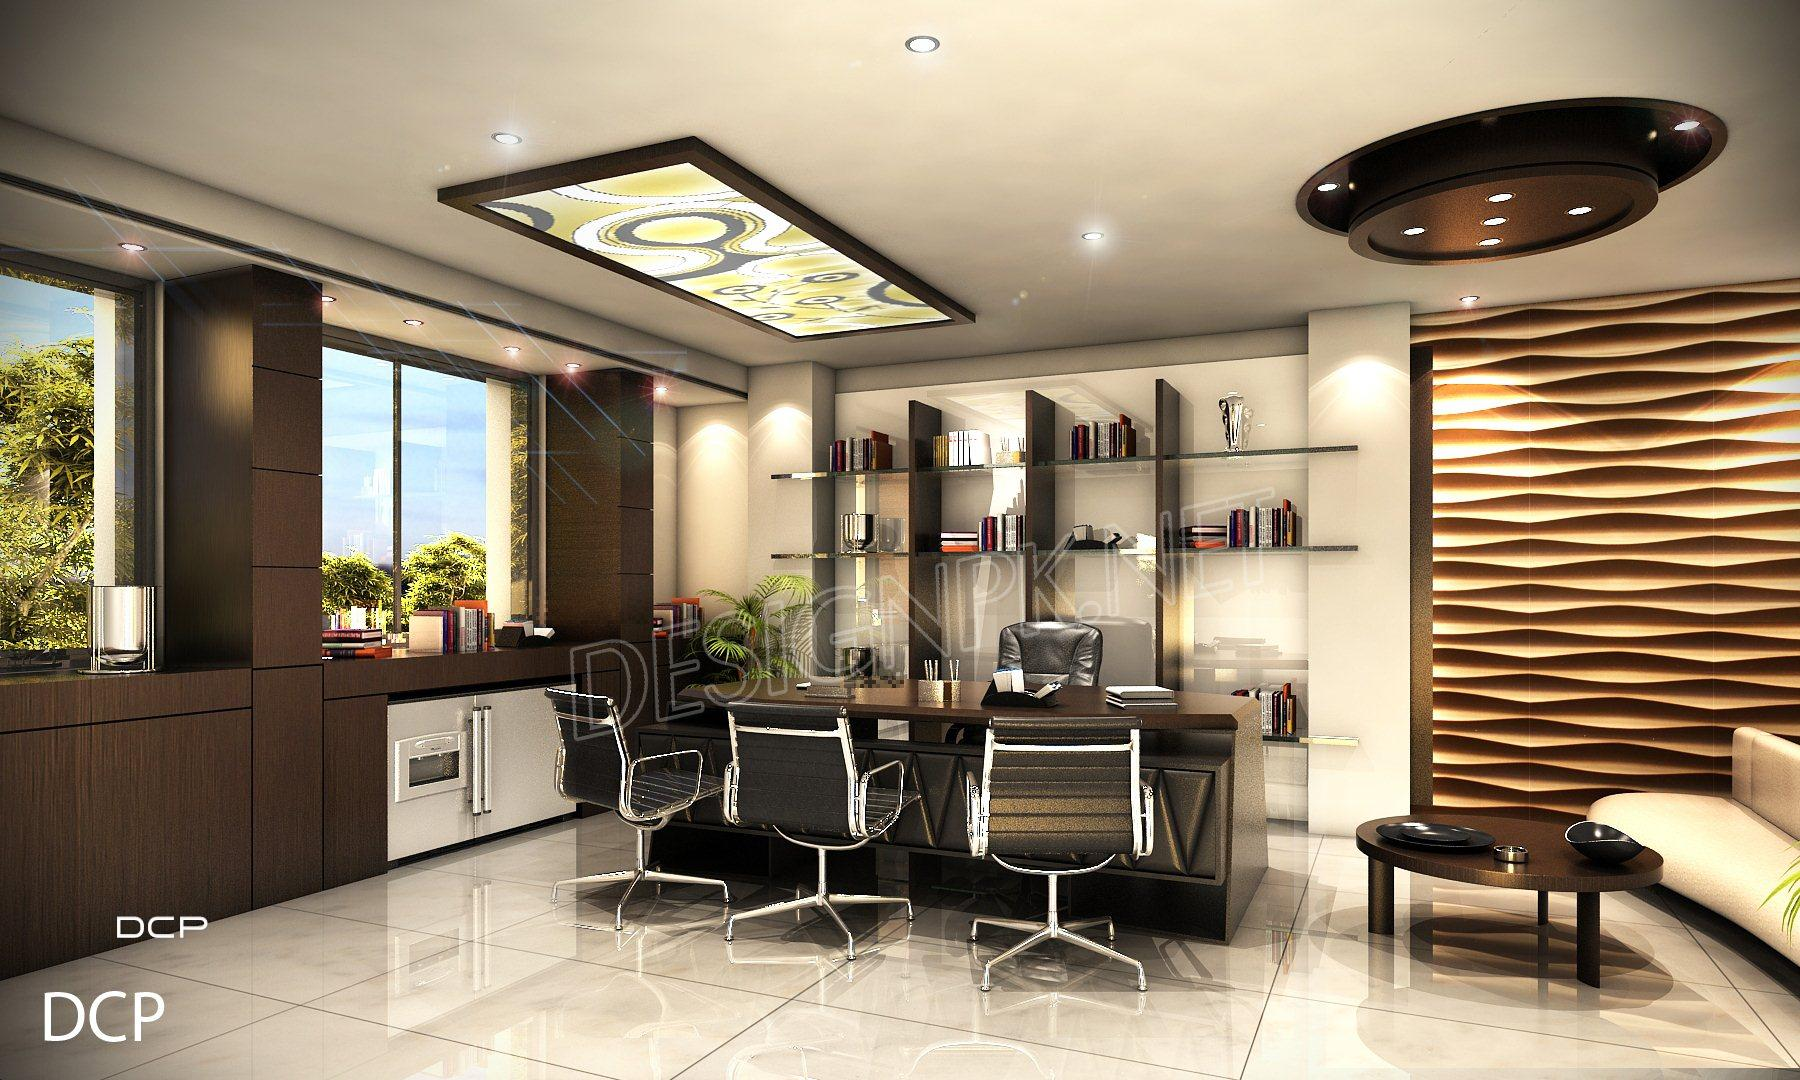 Ceo Room Interior Design Project Designpk Net Dcp